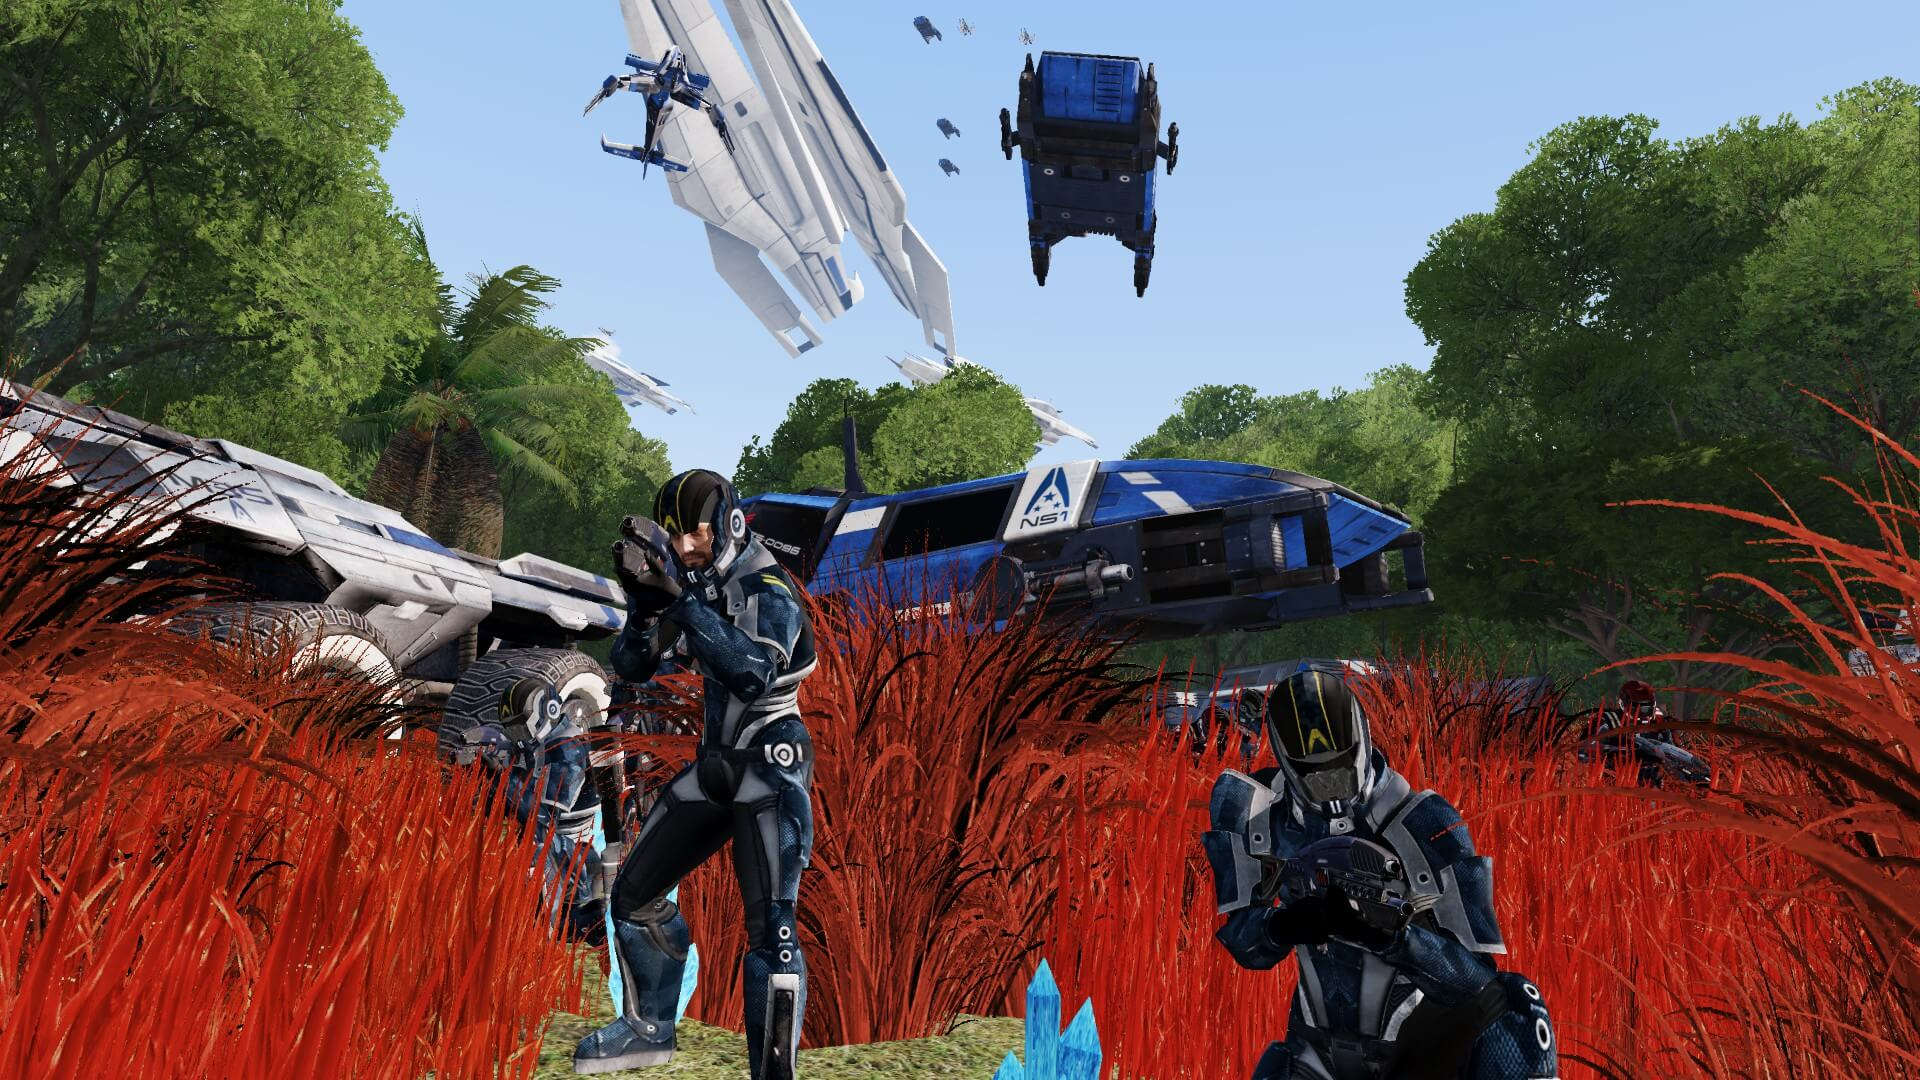 Major Mass Effect And Star Wars Mods Released For Arma 3